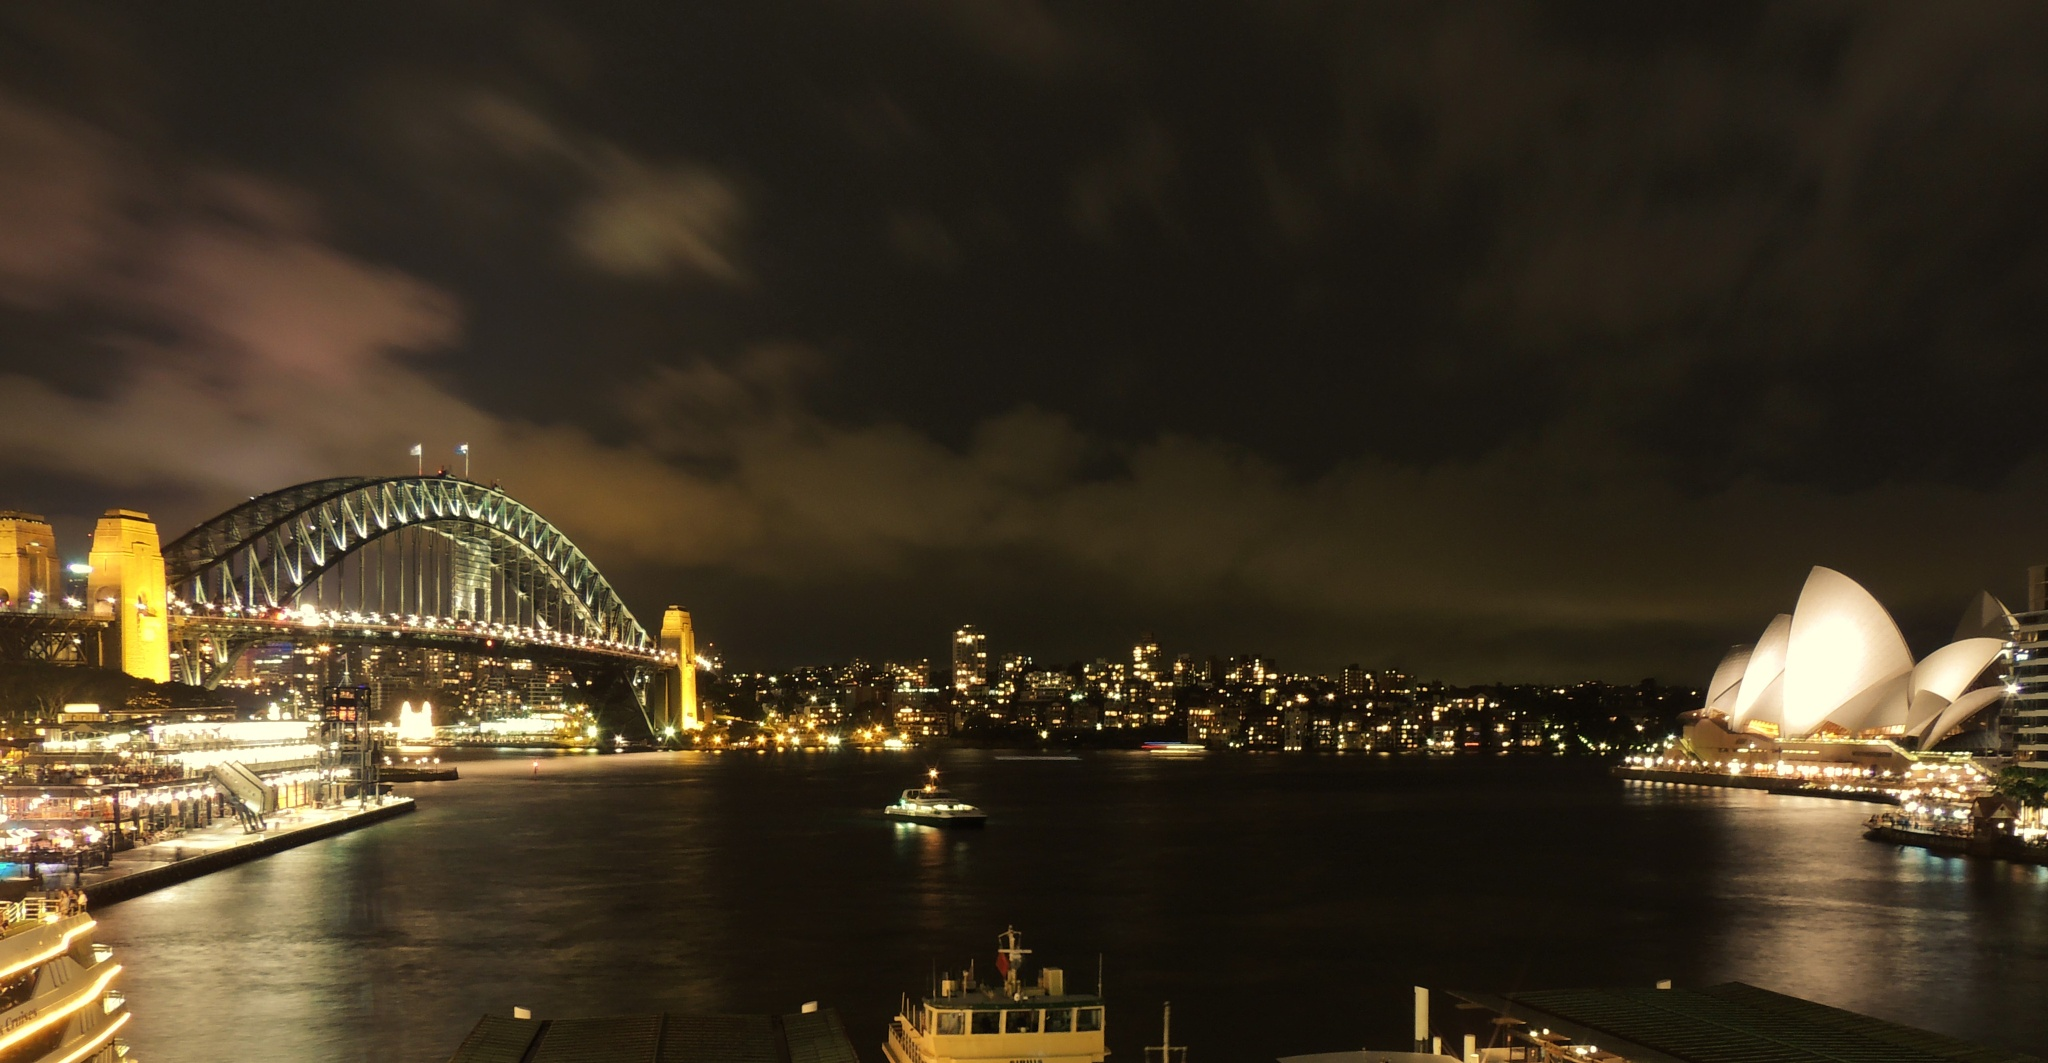 Welcome to Sydney by Rohit Chauhan